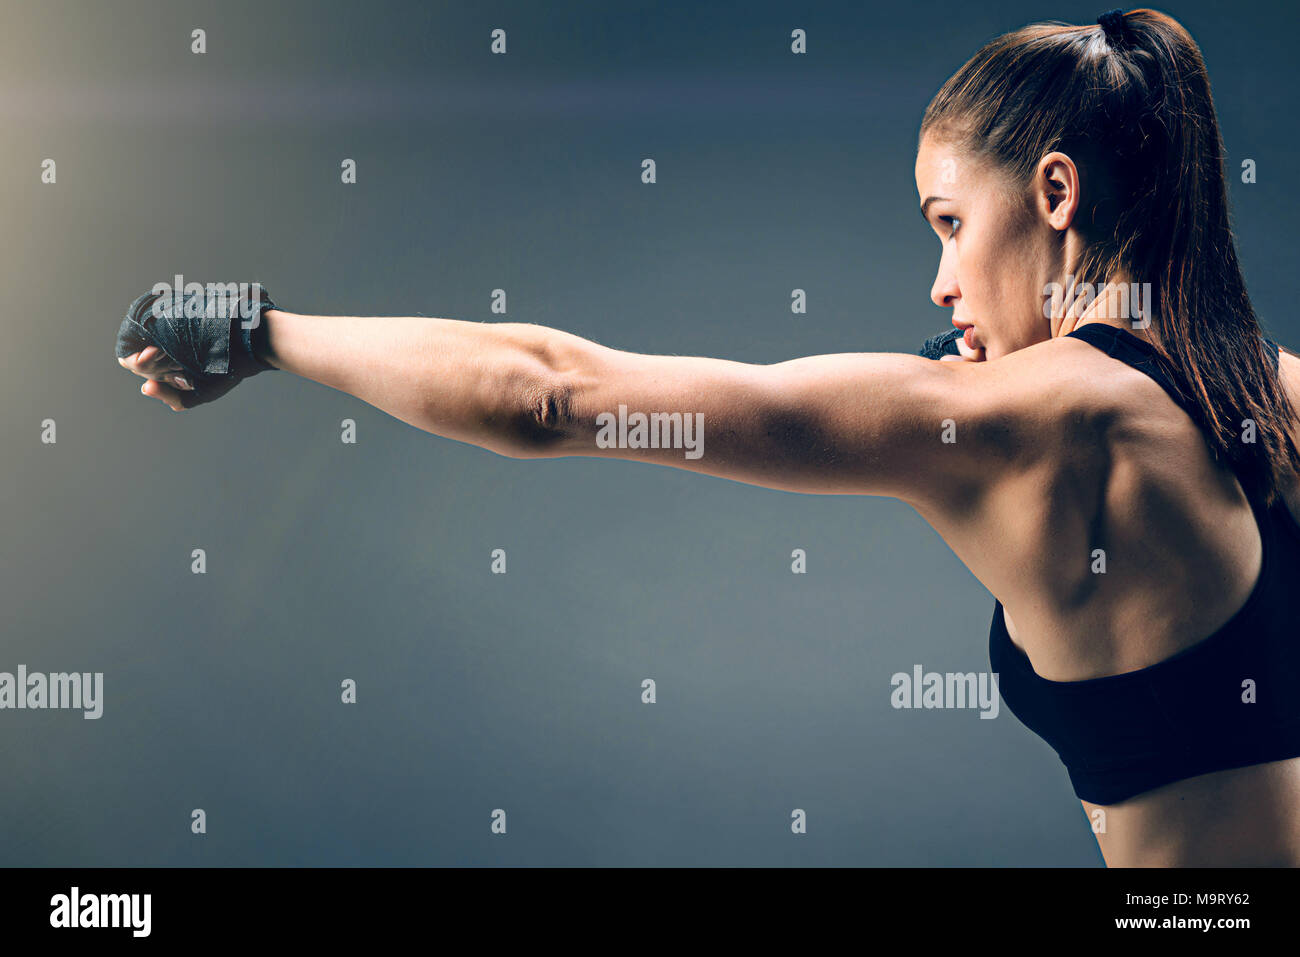 Focused fit brunette boxing confidently - Stock Image